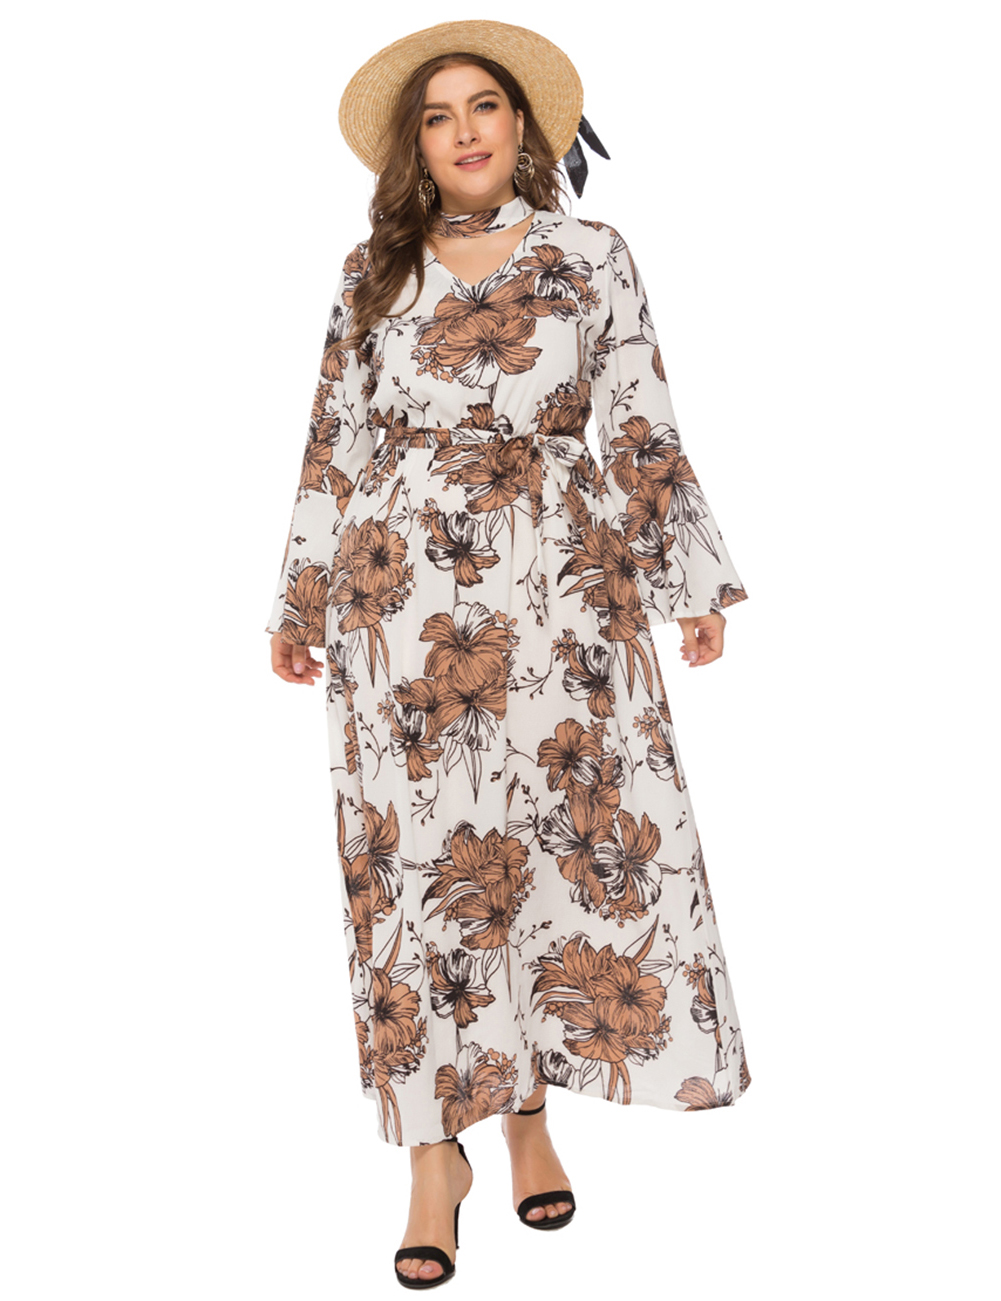 //cdn.affectcloud.com/feelingirldress/upload/imgs/2019-07-15/VZ191148-WH1/VZ191148-WH1-4.jpg